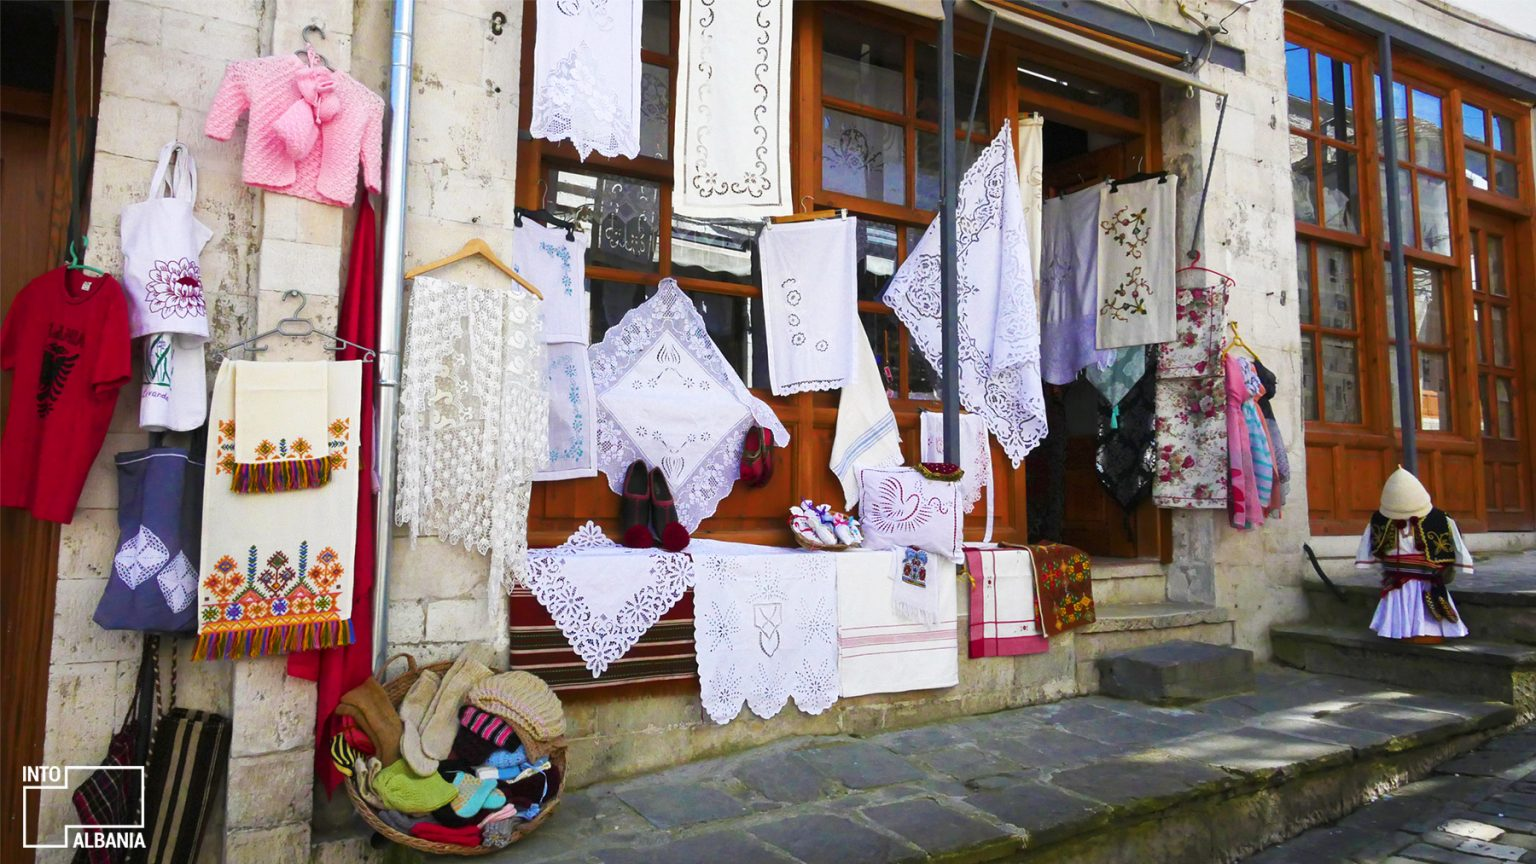 Traditional Embroidery, Old Bazaar in Gjirokastra, photo by IntoAlbania